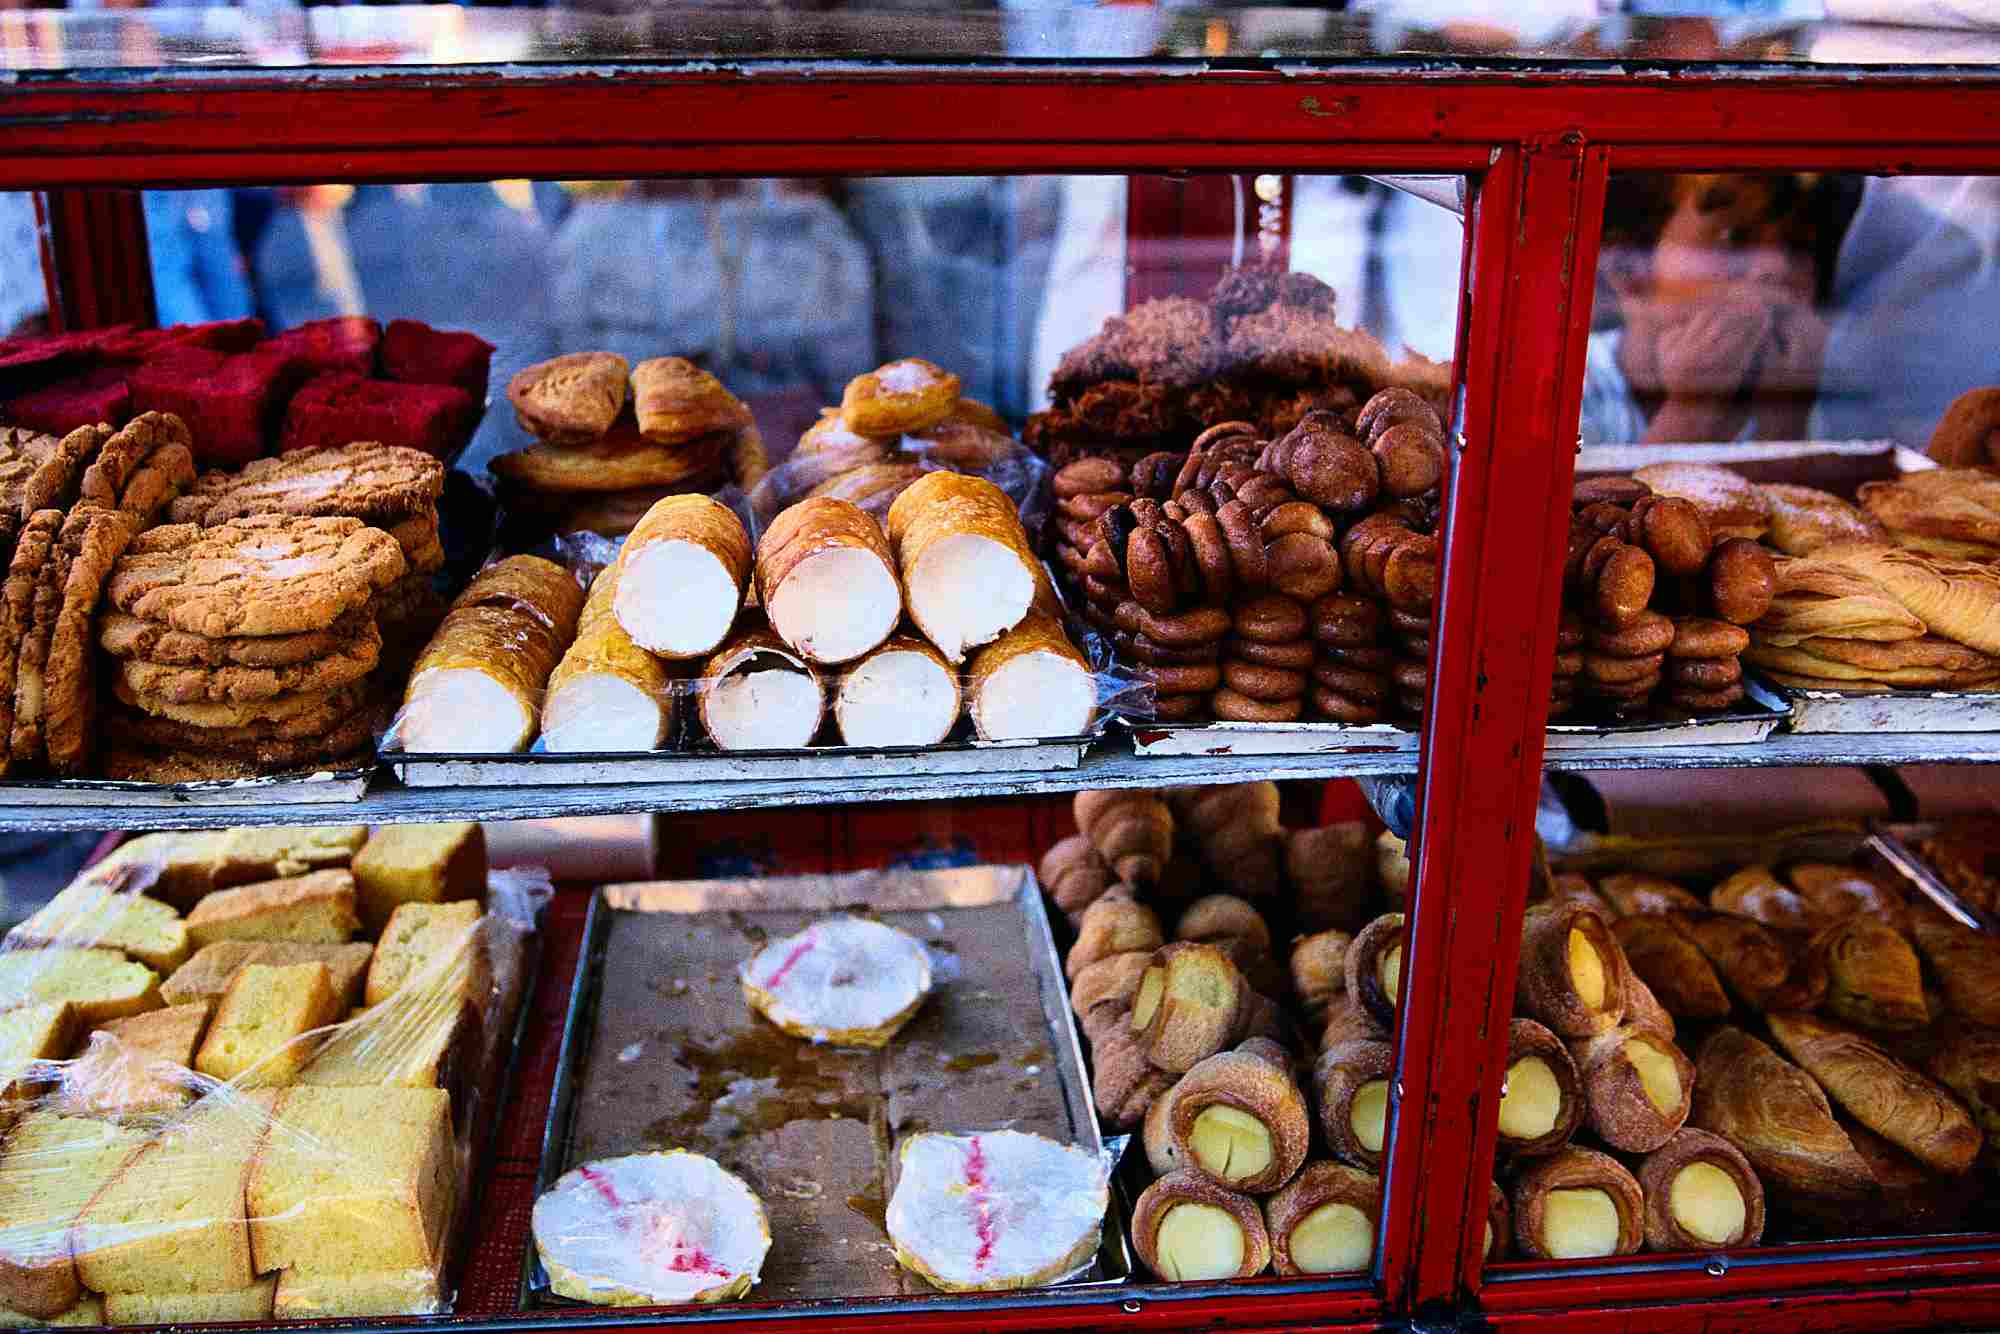 A display case full of a variety of Mexican sweet breads and pastries.